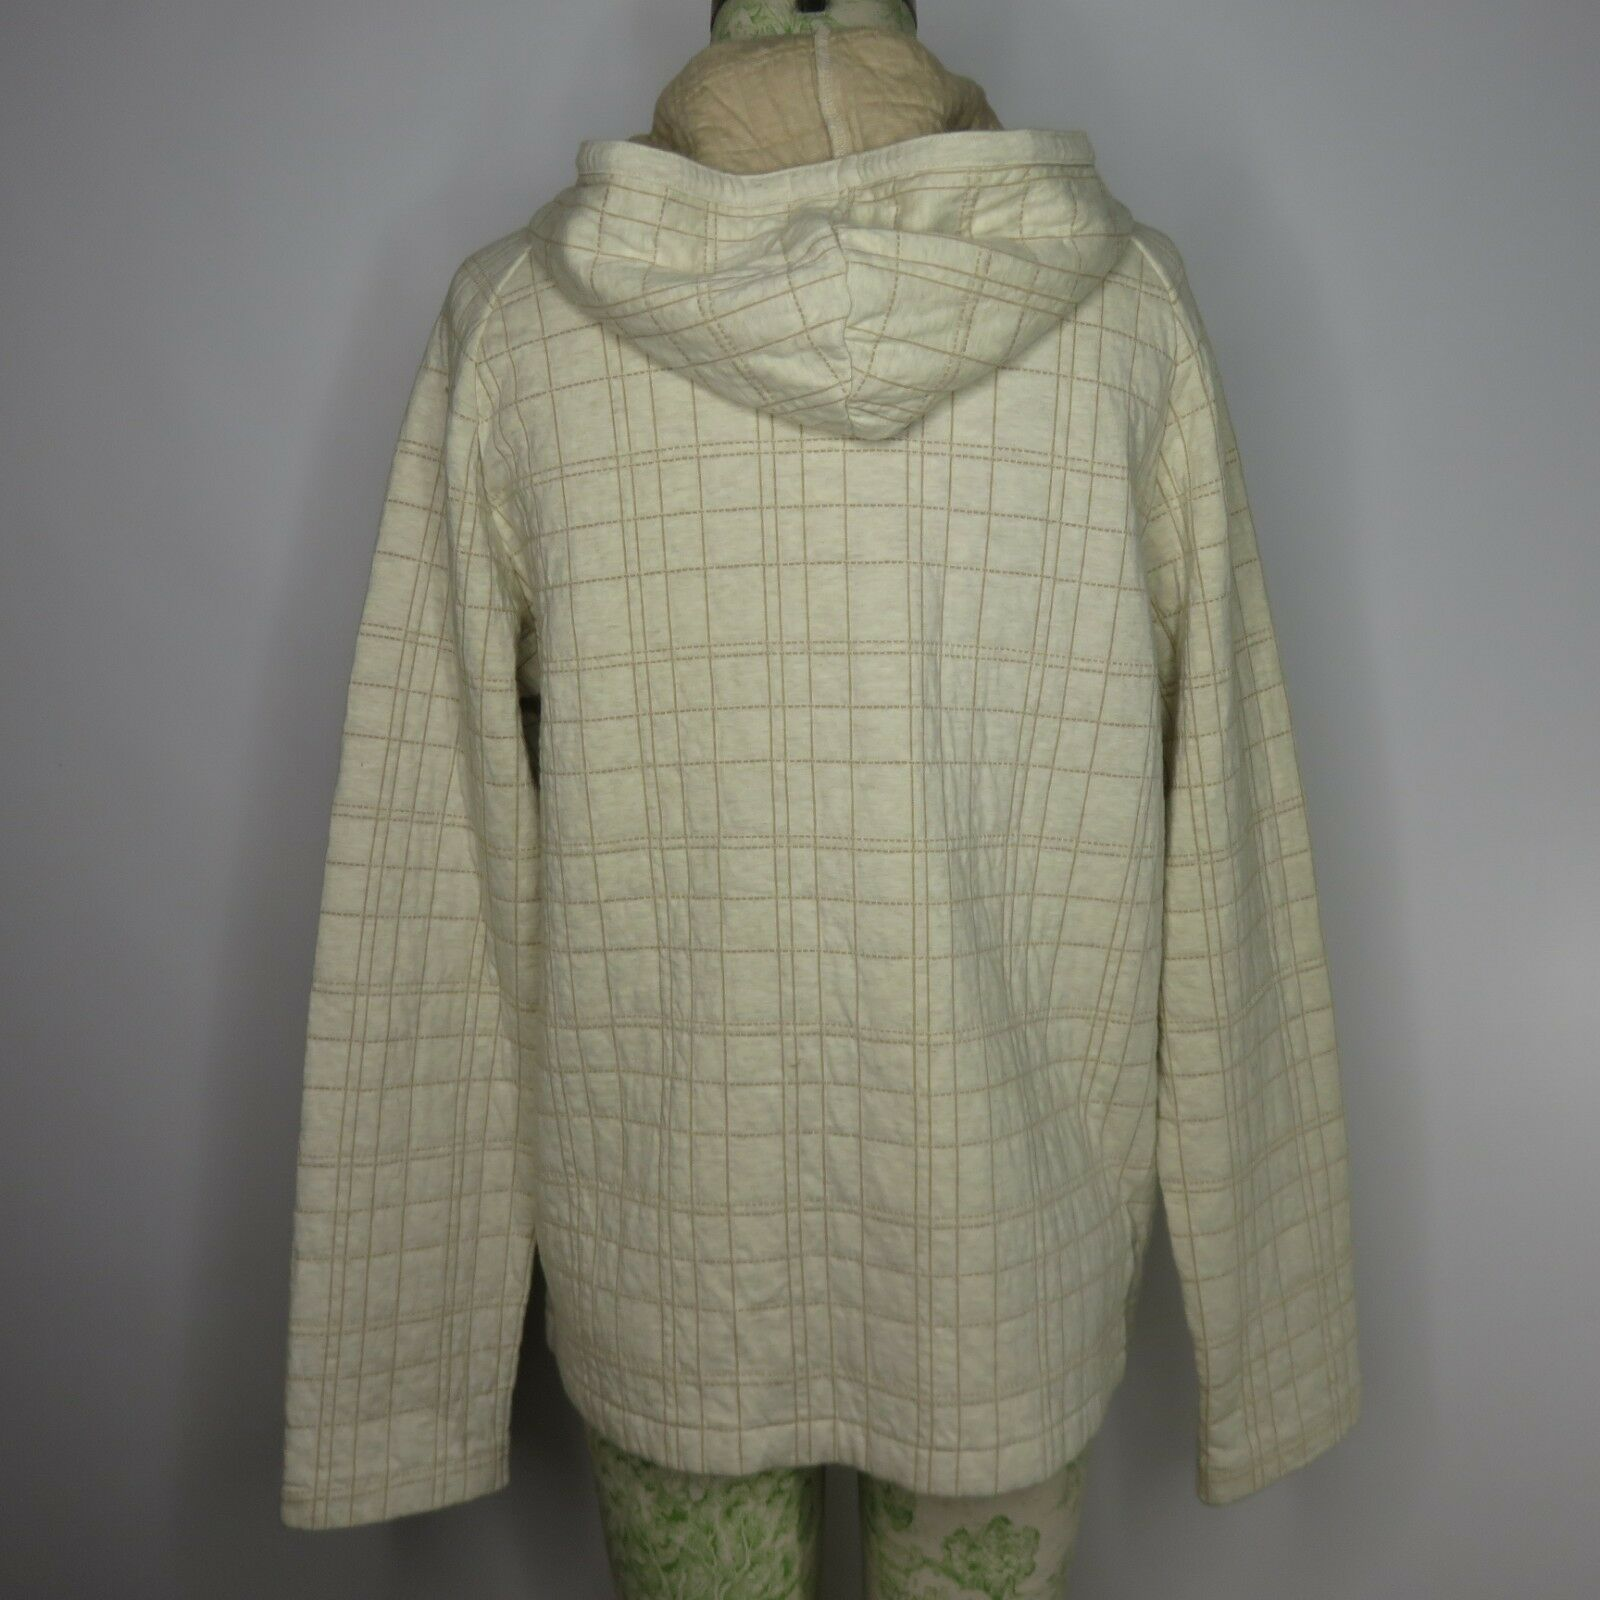 New DKNY DKNY DKNY Pure Oatmeal Small Full Zip Hoodie Sweatshirt Quilted  148 bc7ee7